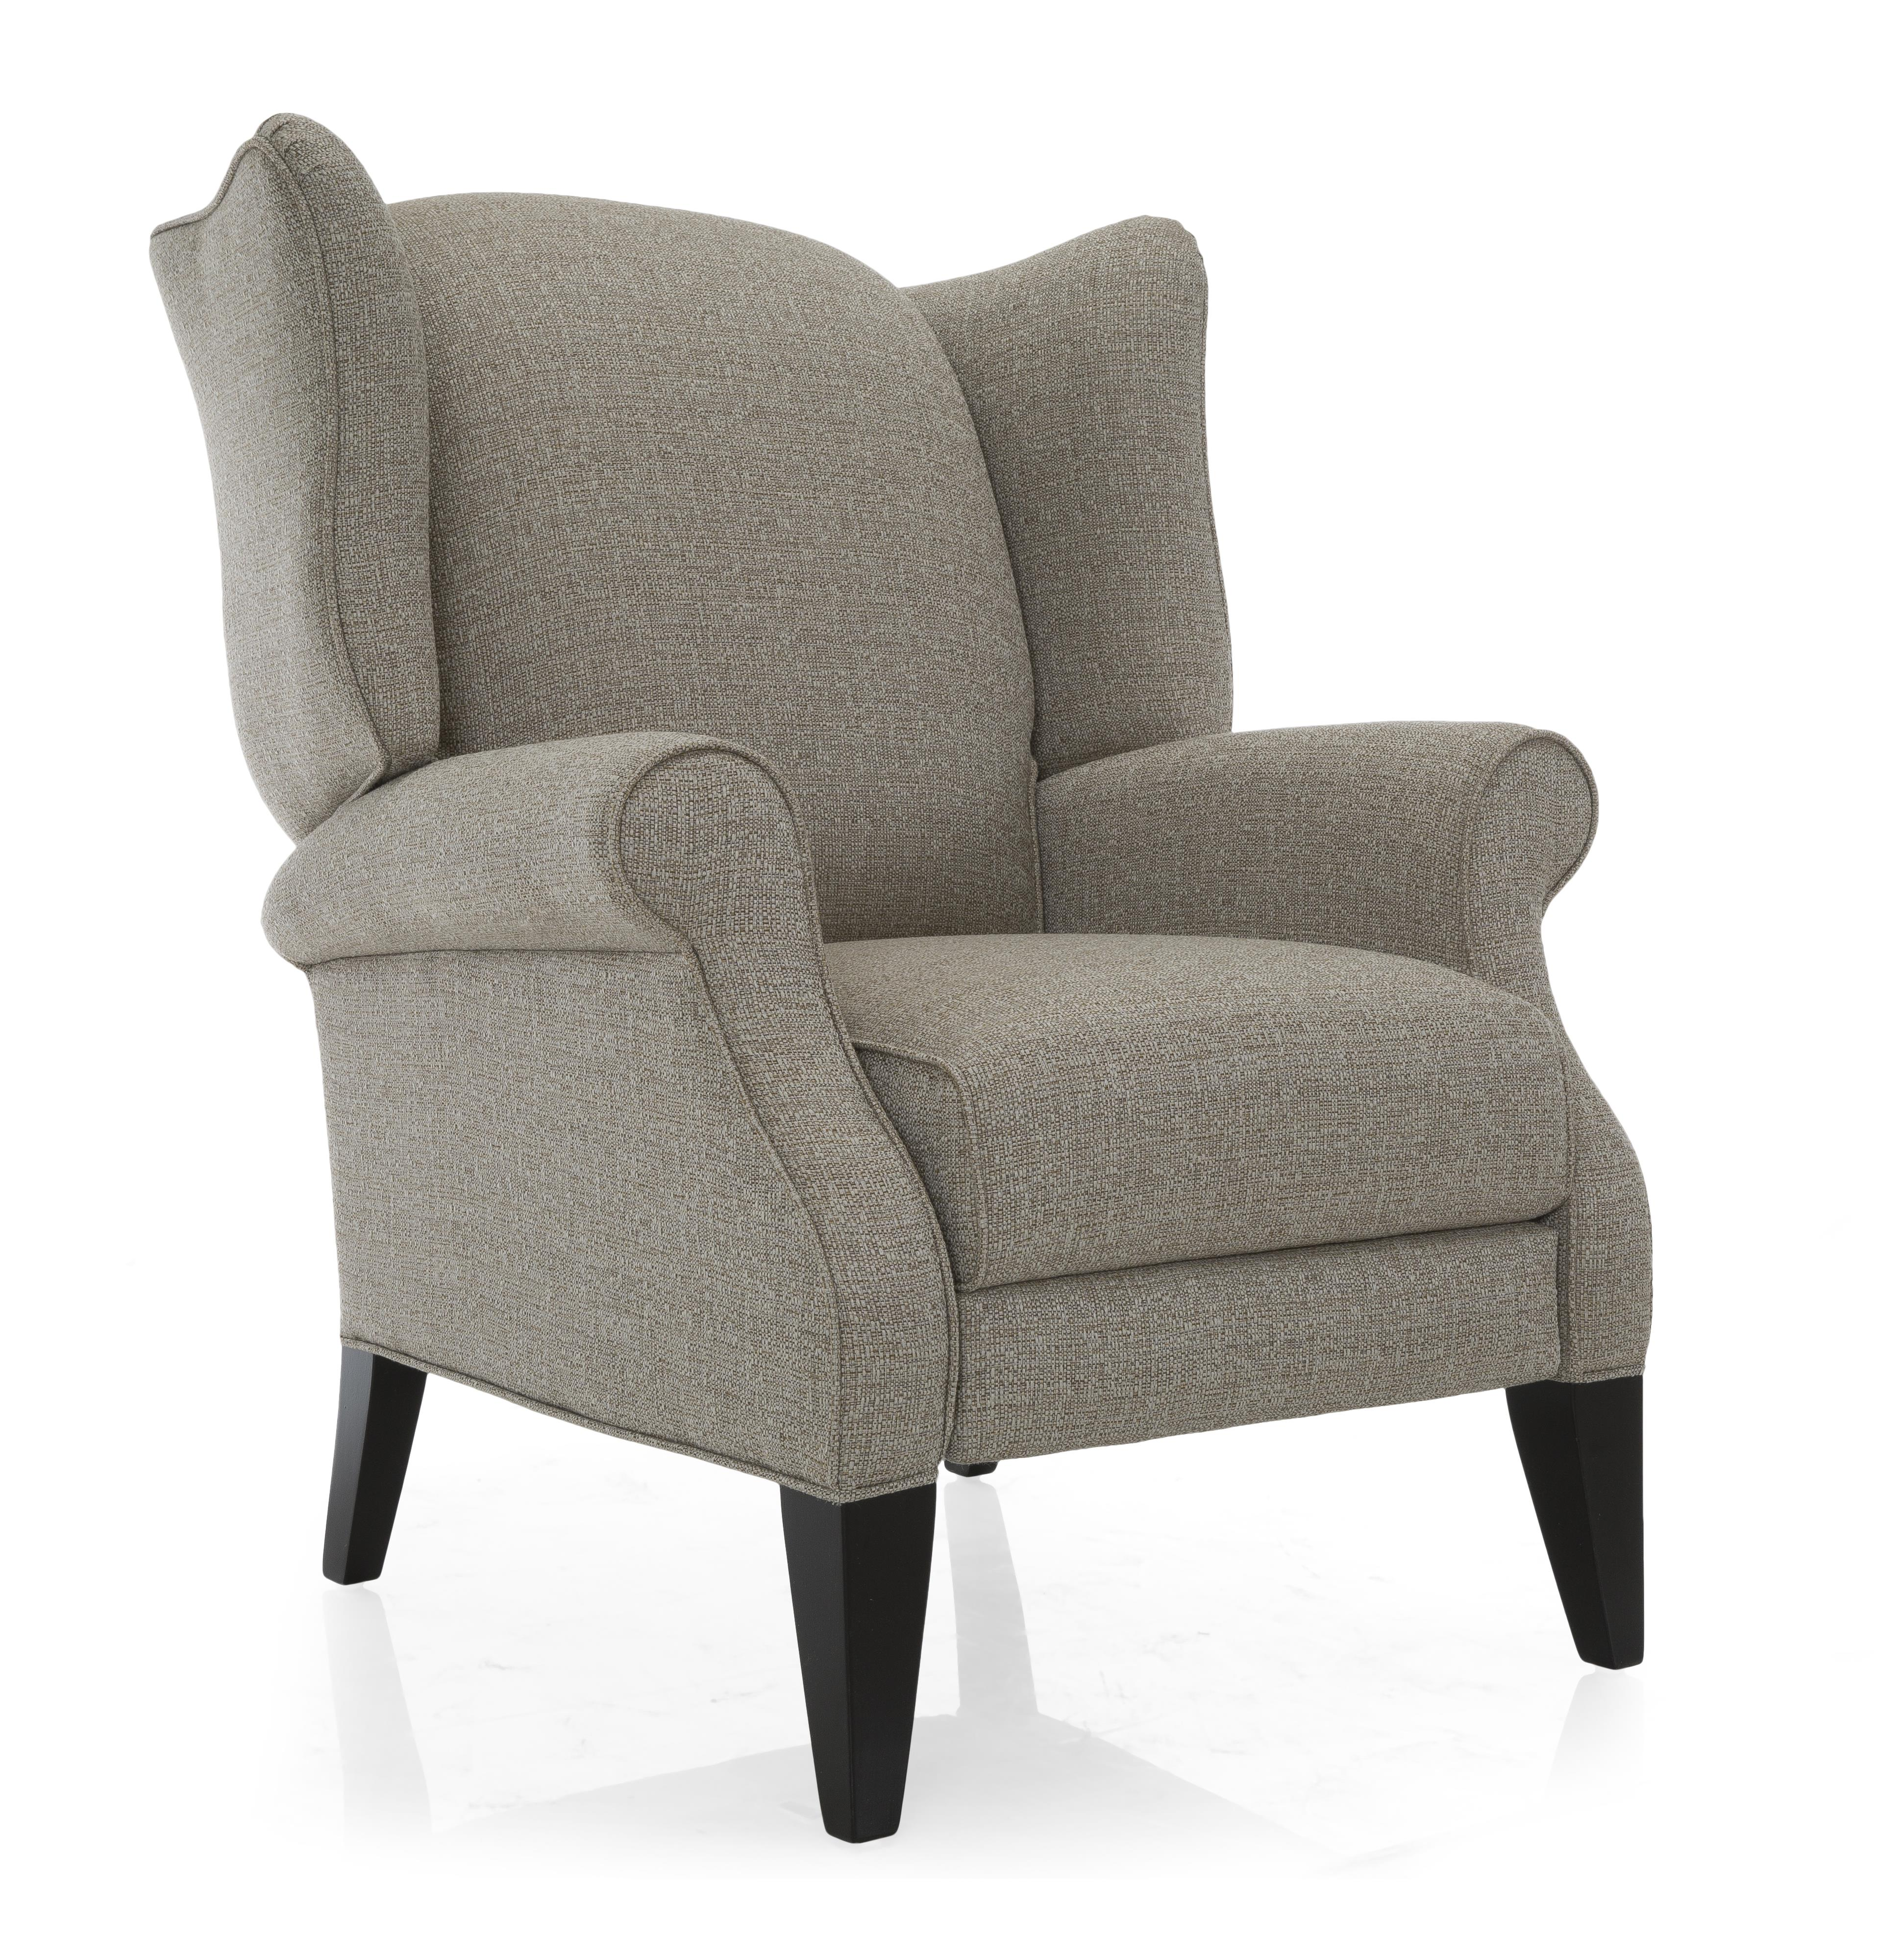 Decor-Rest 2220 Push Back Wing Chair - Item Number: 2220-MoveSand